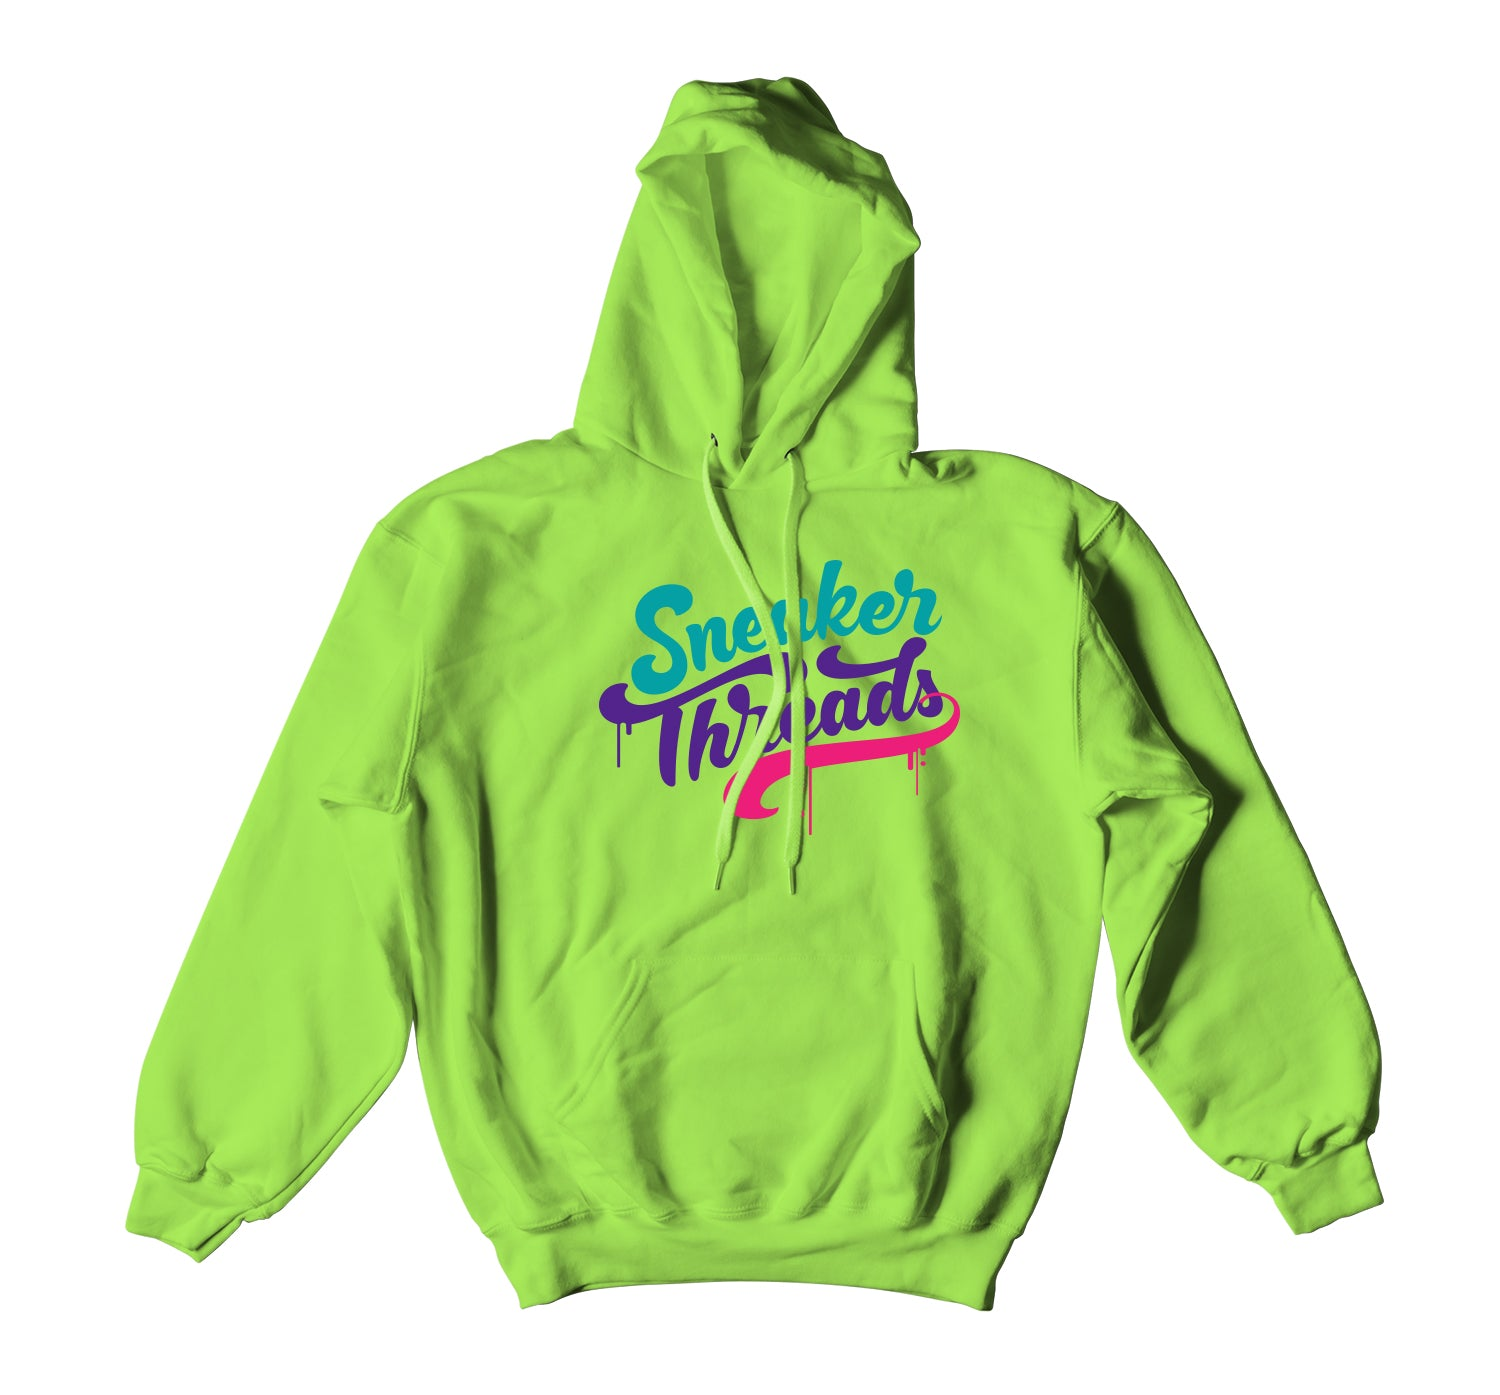 All Star 2020 Swackhammer Hoody  - ST Drip - Neon Green